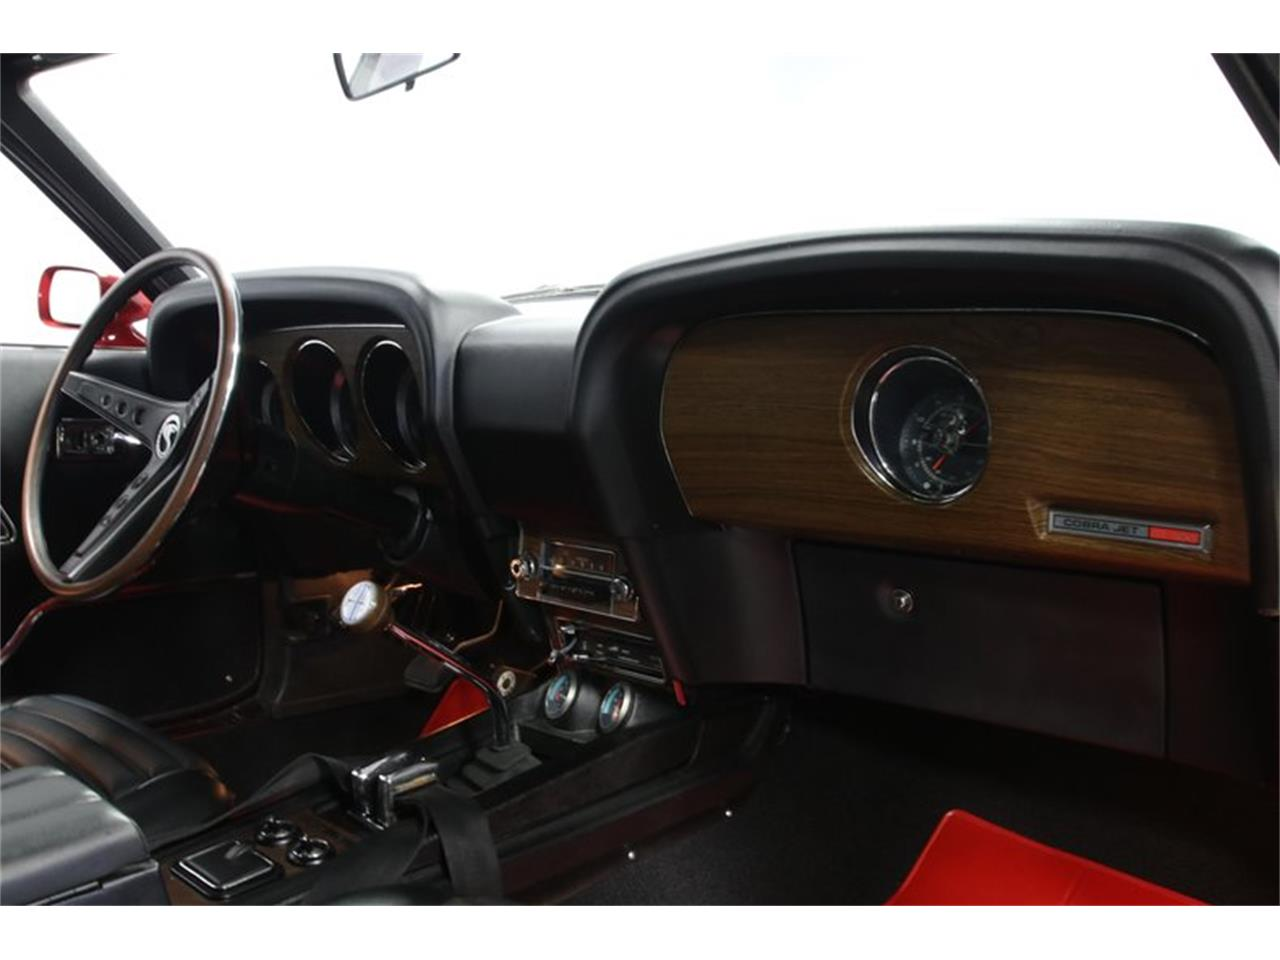 Large Picture of '69 Mustang located in Concord North Carolina - $124,995.00 - PHUN